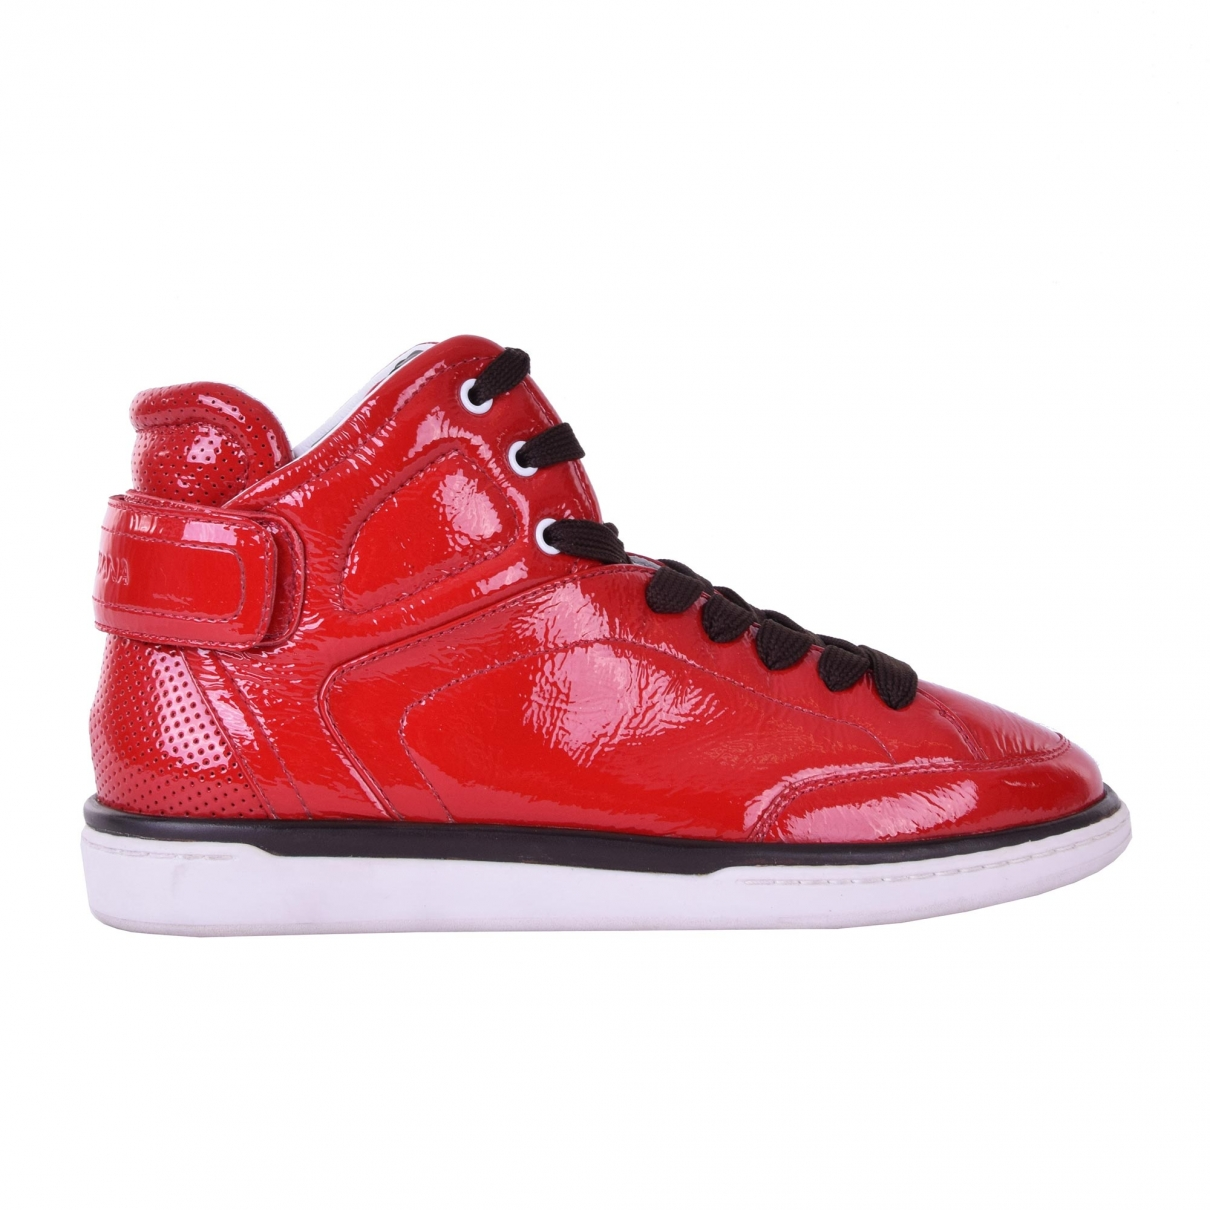 Dolce & Gabbana \N Red Patent leather Trainers for Men 40.5 EU